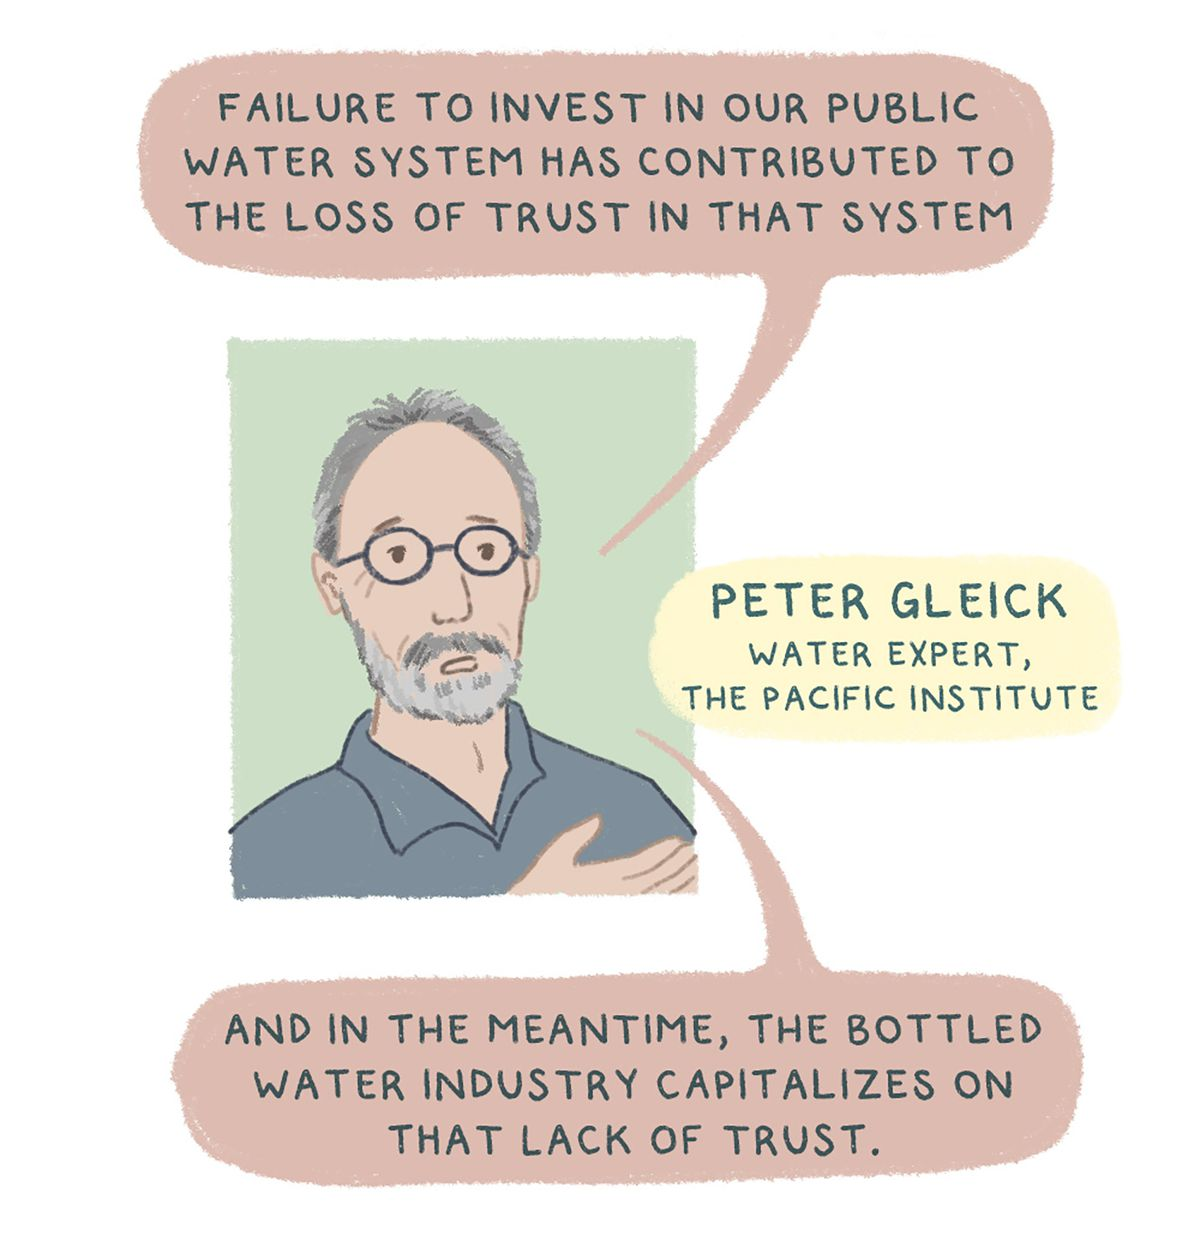 """""""""""Failure to invest in our public water system has contributed to the loss of trust in that system,"""" says water expert Peter Gleick from The Pacific Institute. """"And in the meantime, the bottled water industry capitalizes on that lack of trust."""""""